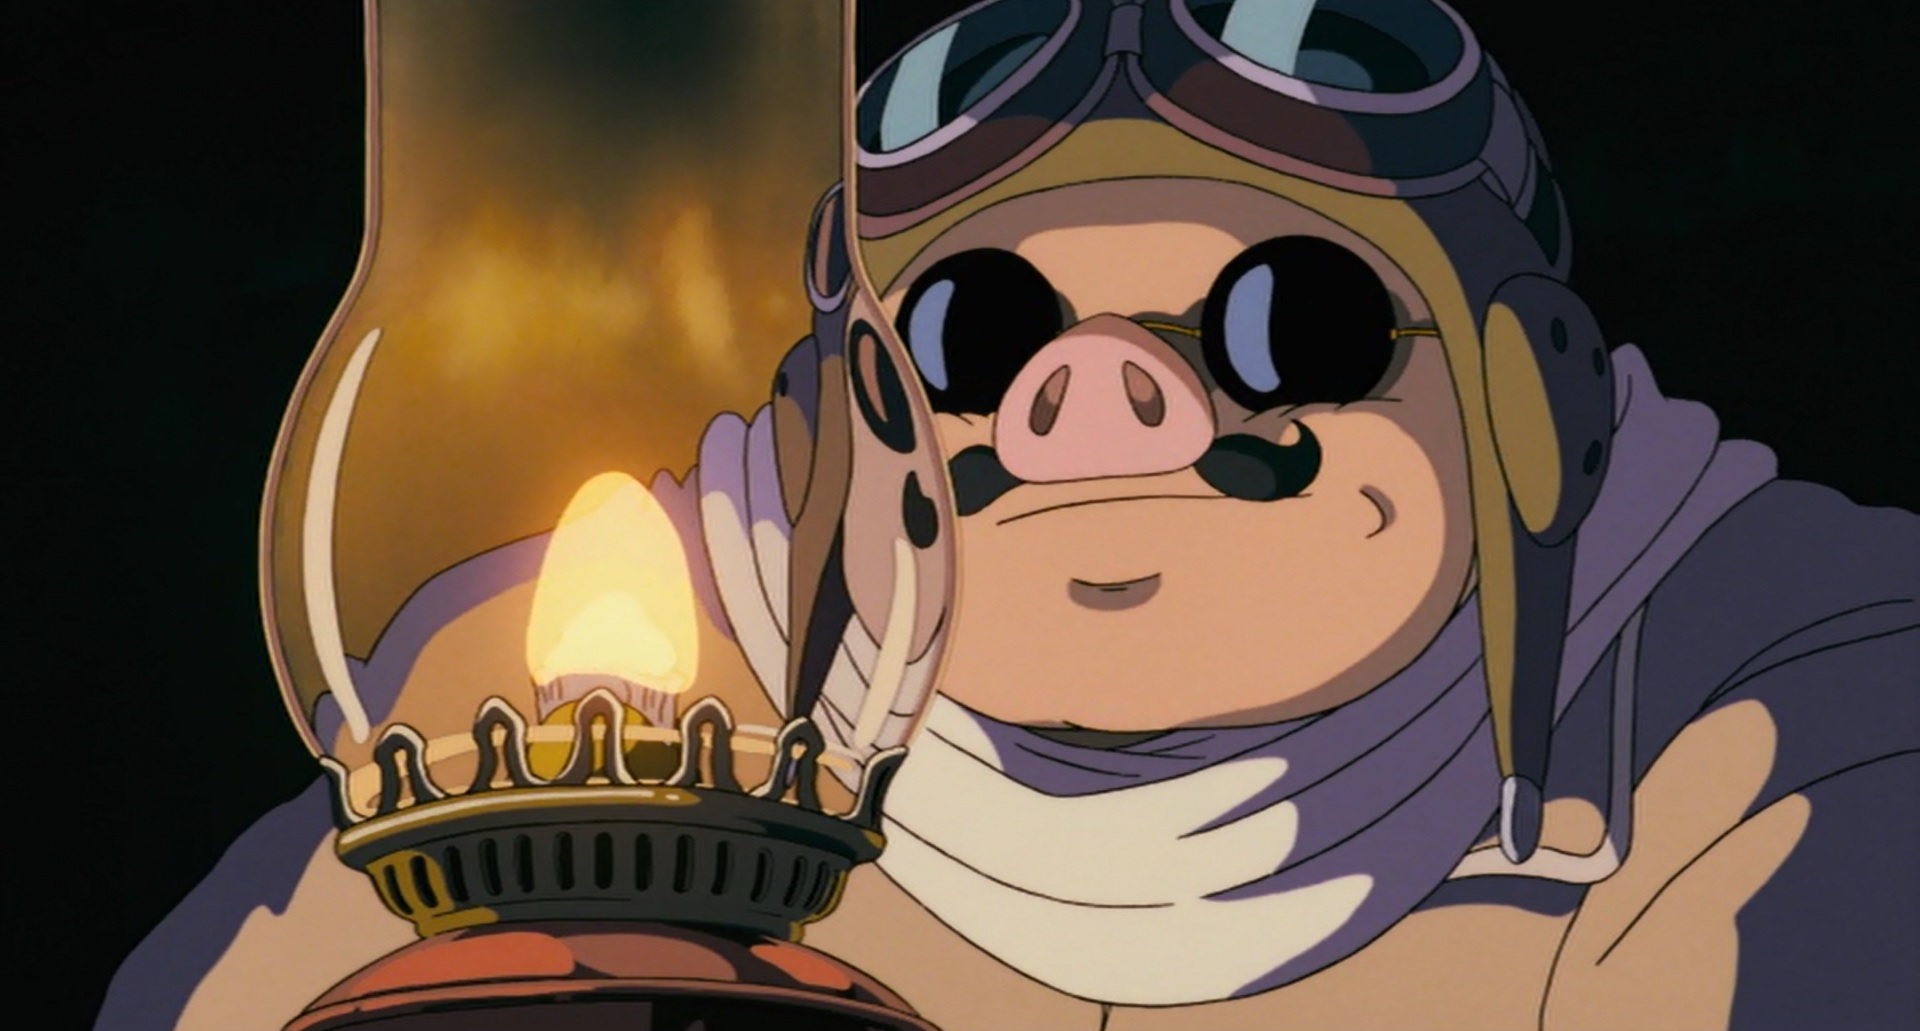 Porco from Porco Rosso staring at an oil lamp.